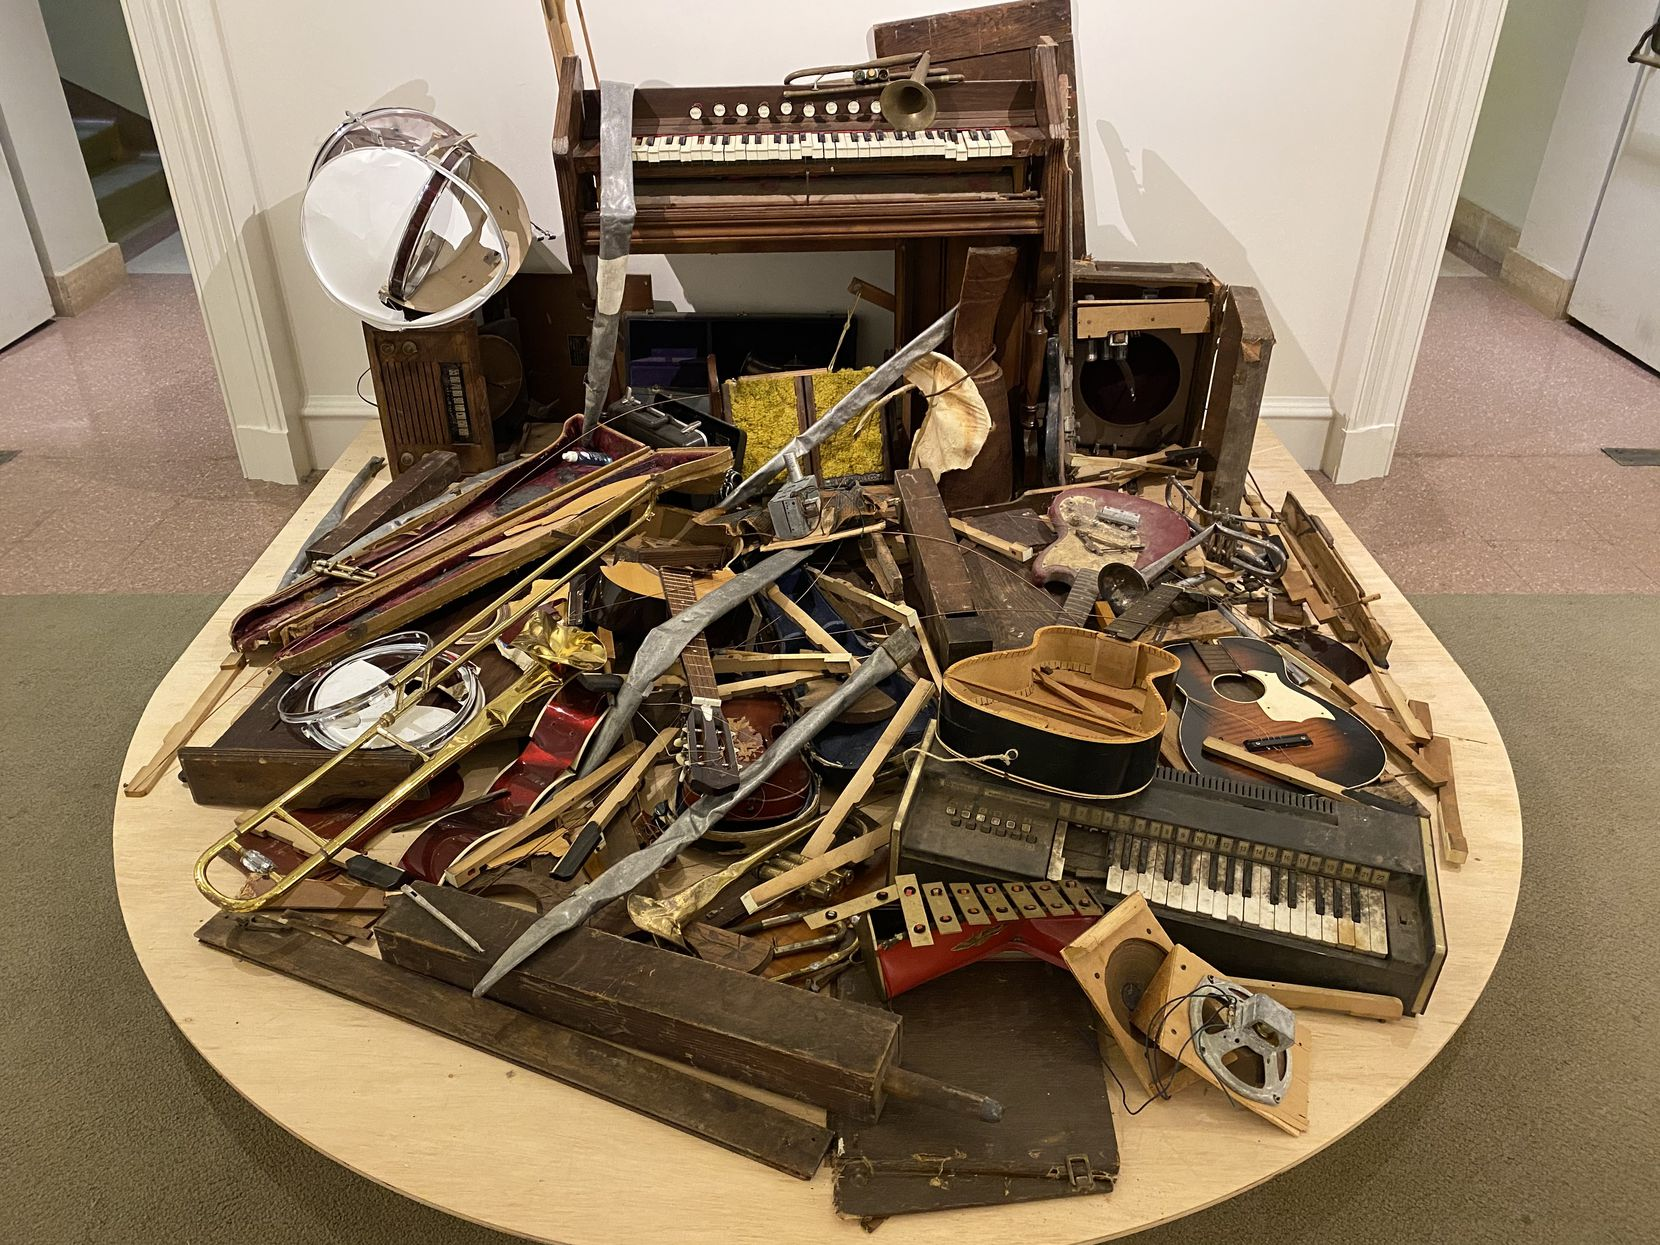 """This mixed media work by Lonnie Holley, """"After the Revival (Vox Humana III: The Strength of Music Lives After the Instruments Are Destroyed)"""" from 2021 is part of the """"From the Limitations of Now"""" exhibition at the Philbrook Museum of Art in Tulsa. (Photo: Philbrook Museum of Art)"""